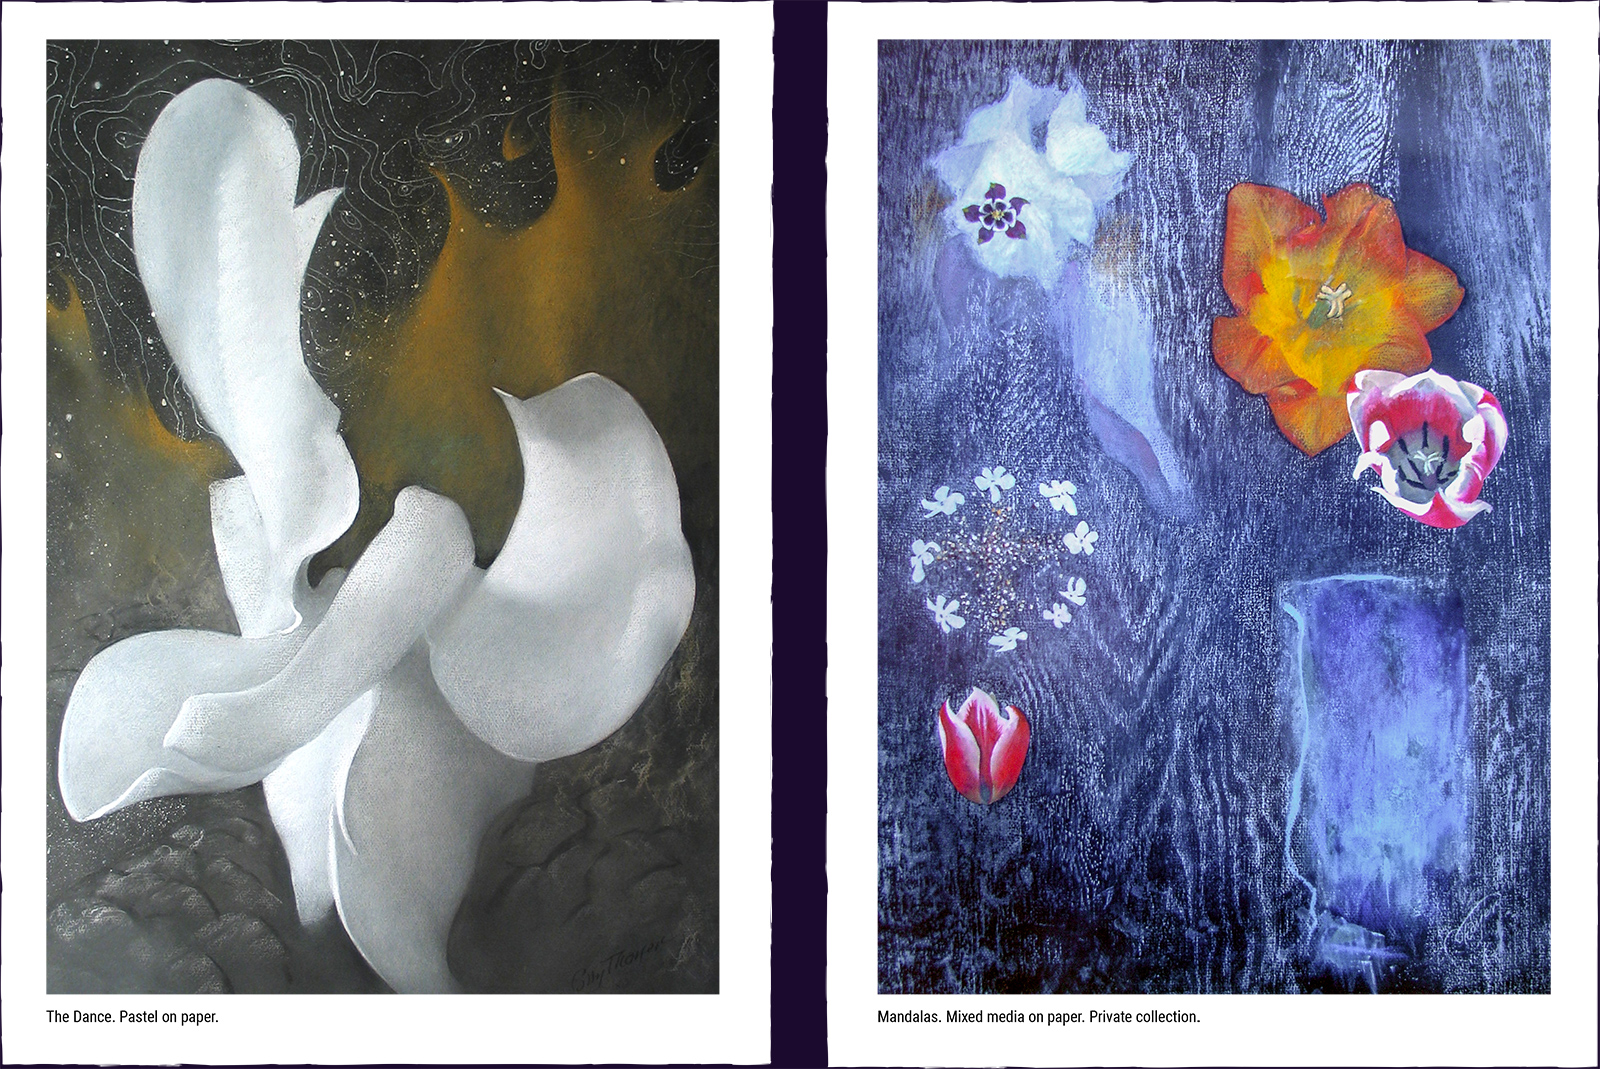 Two mystery paintings. (1) The Dance. Pastel on paper. (2) Mandalas. Mixed media on paper. Private collection.